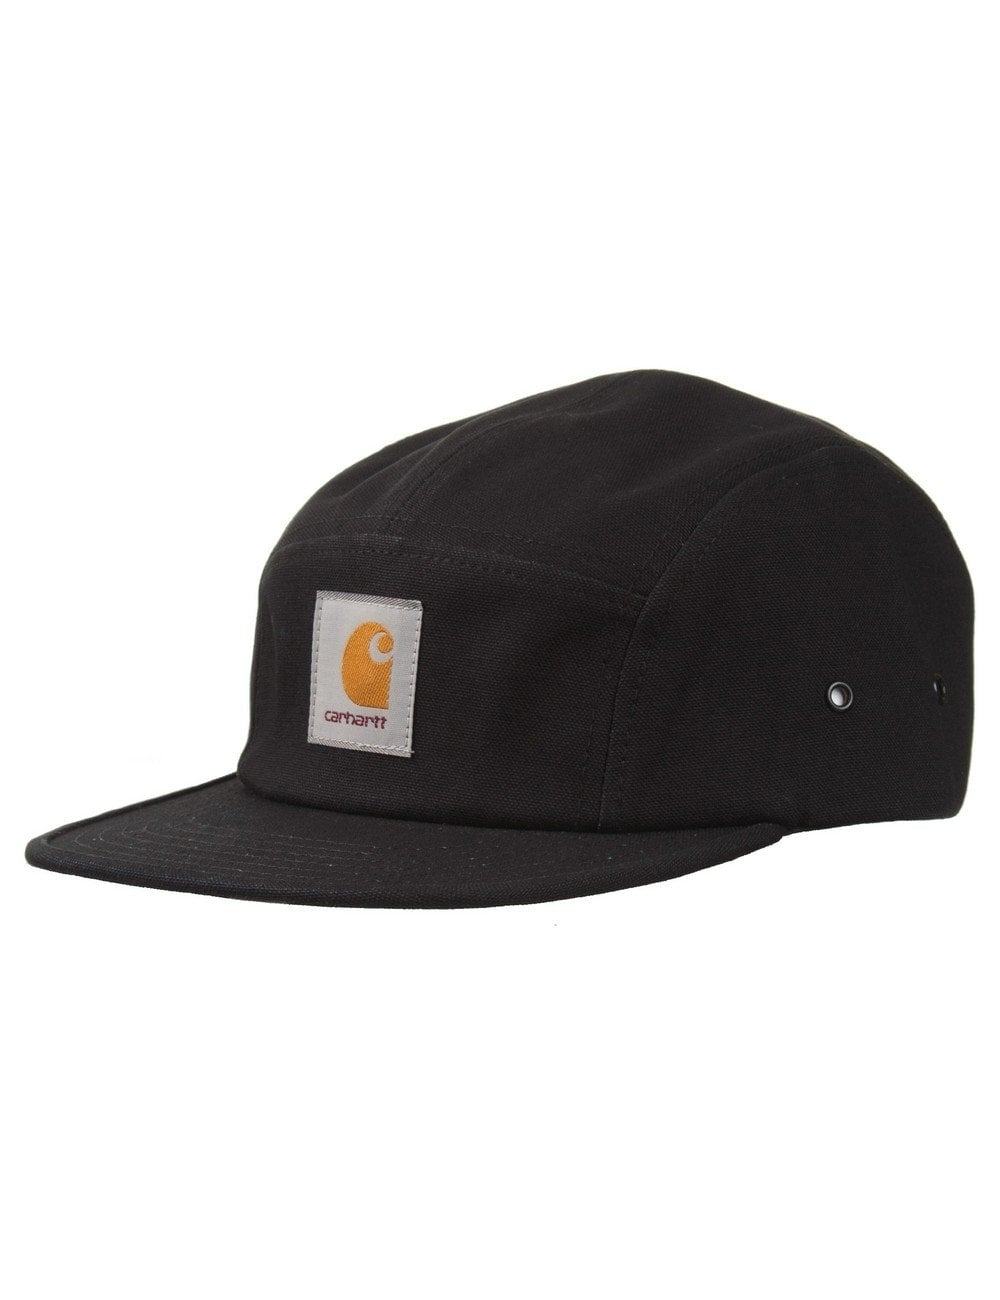 Carhartt WIP Backley 5 Panel Cap - Black - Accessories from Fat ... a7a96362ed5